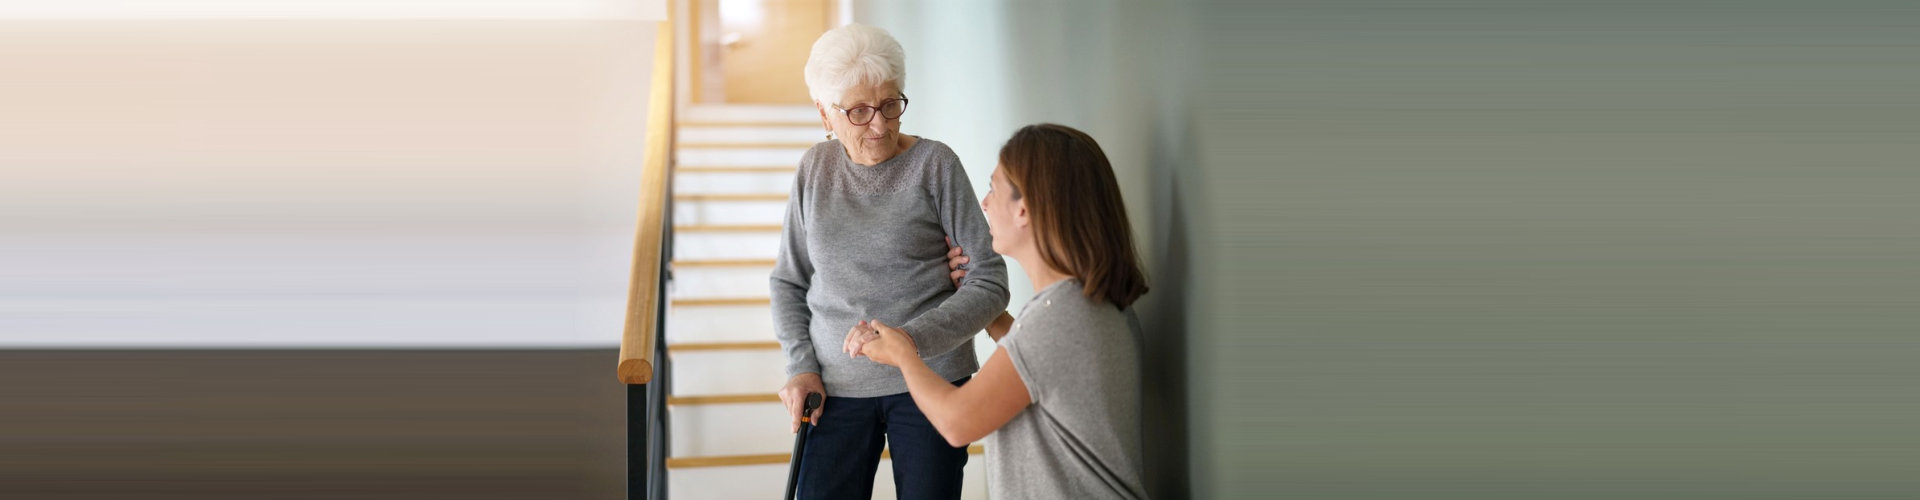 caregiver assisting senior woman going down on the stairs